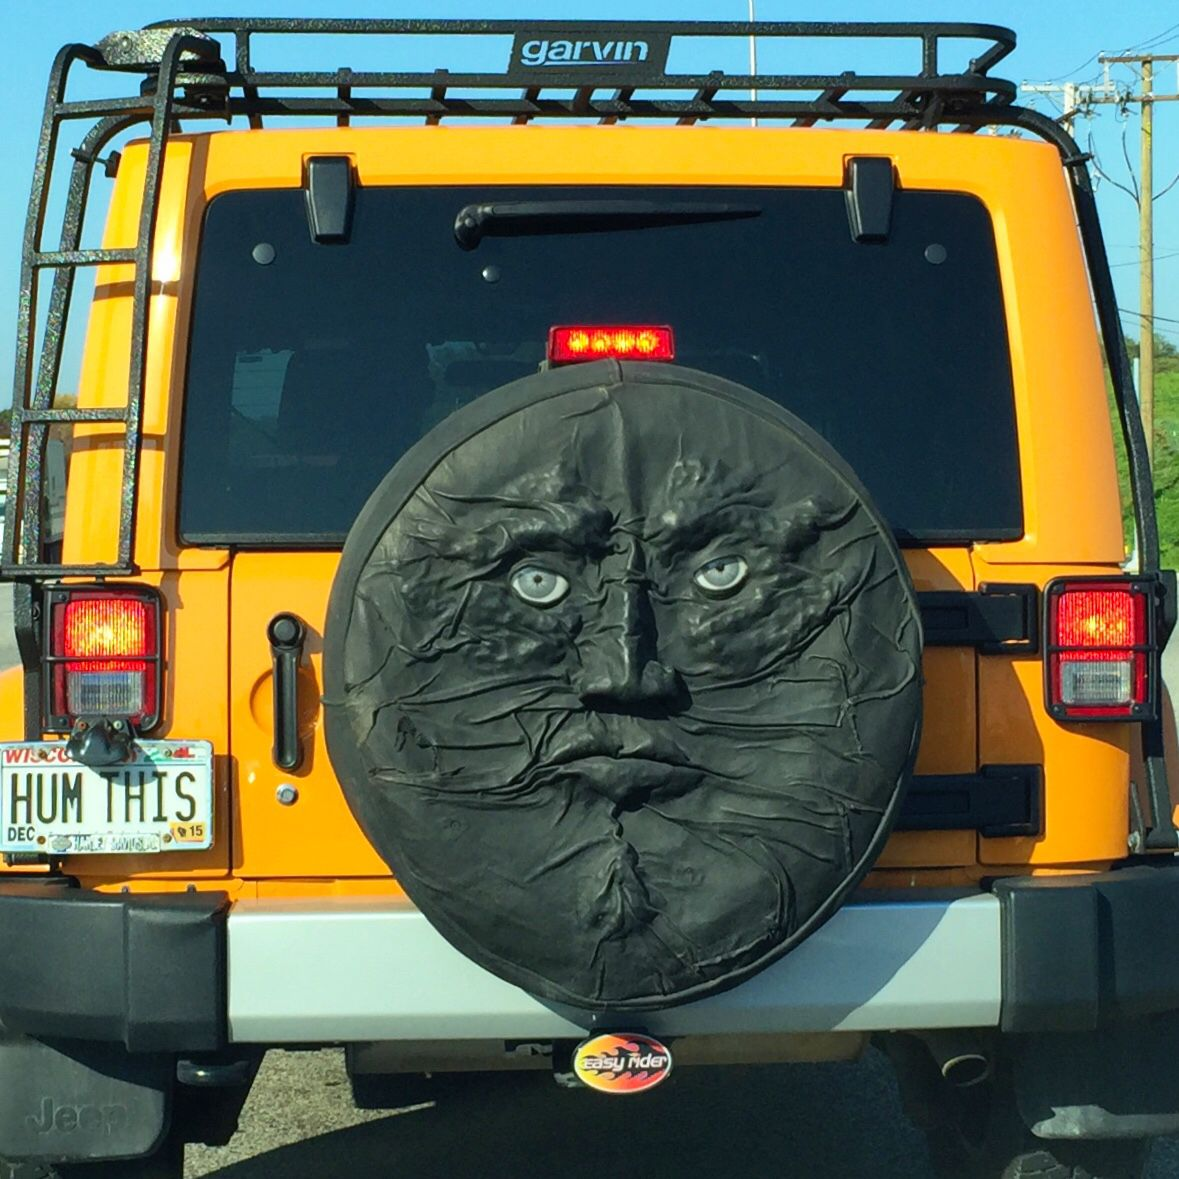 coolest jeep wrangler spare tire cover i 39 ve seen i should 39 ve asked the driver where they got. Black Bedroom Furniture Sets. Home Design Ideas